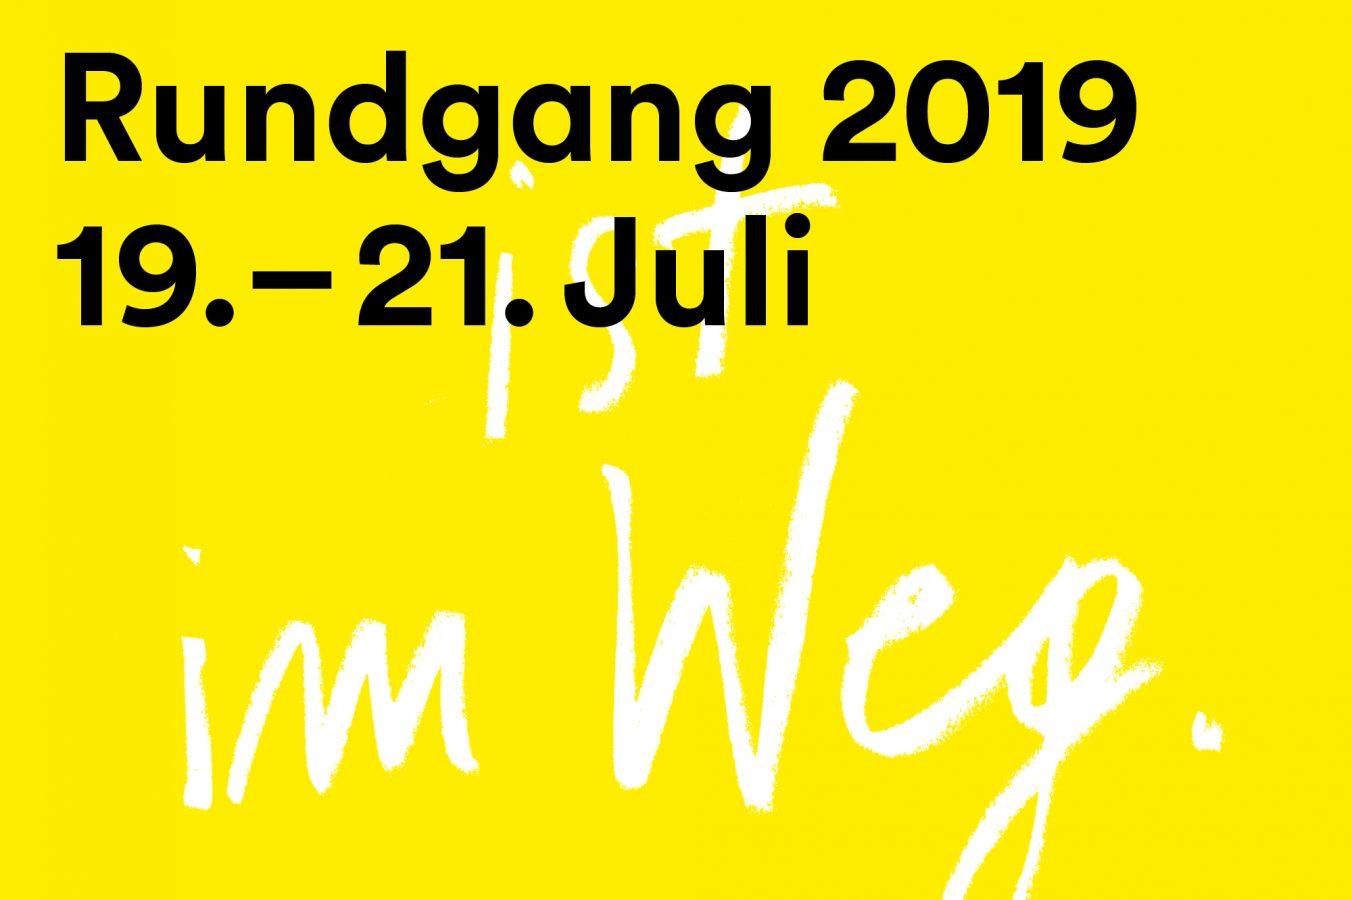 FKN-Rundgang-2019_Website_2